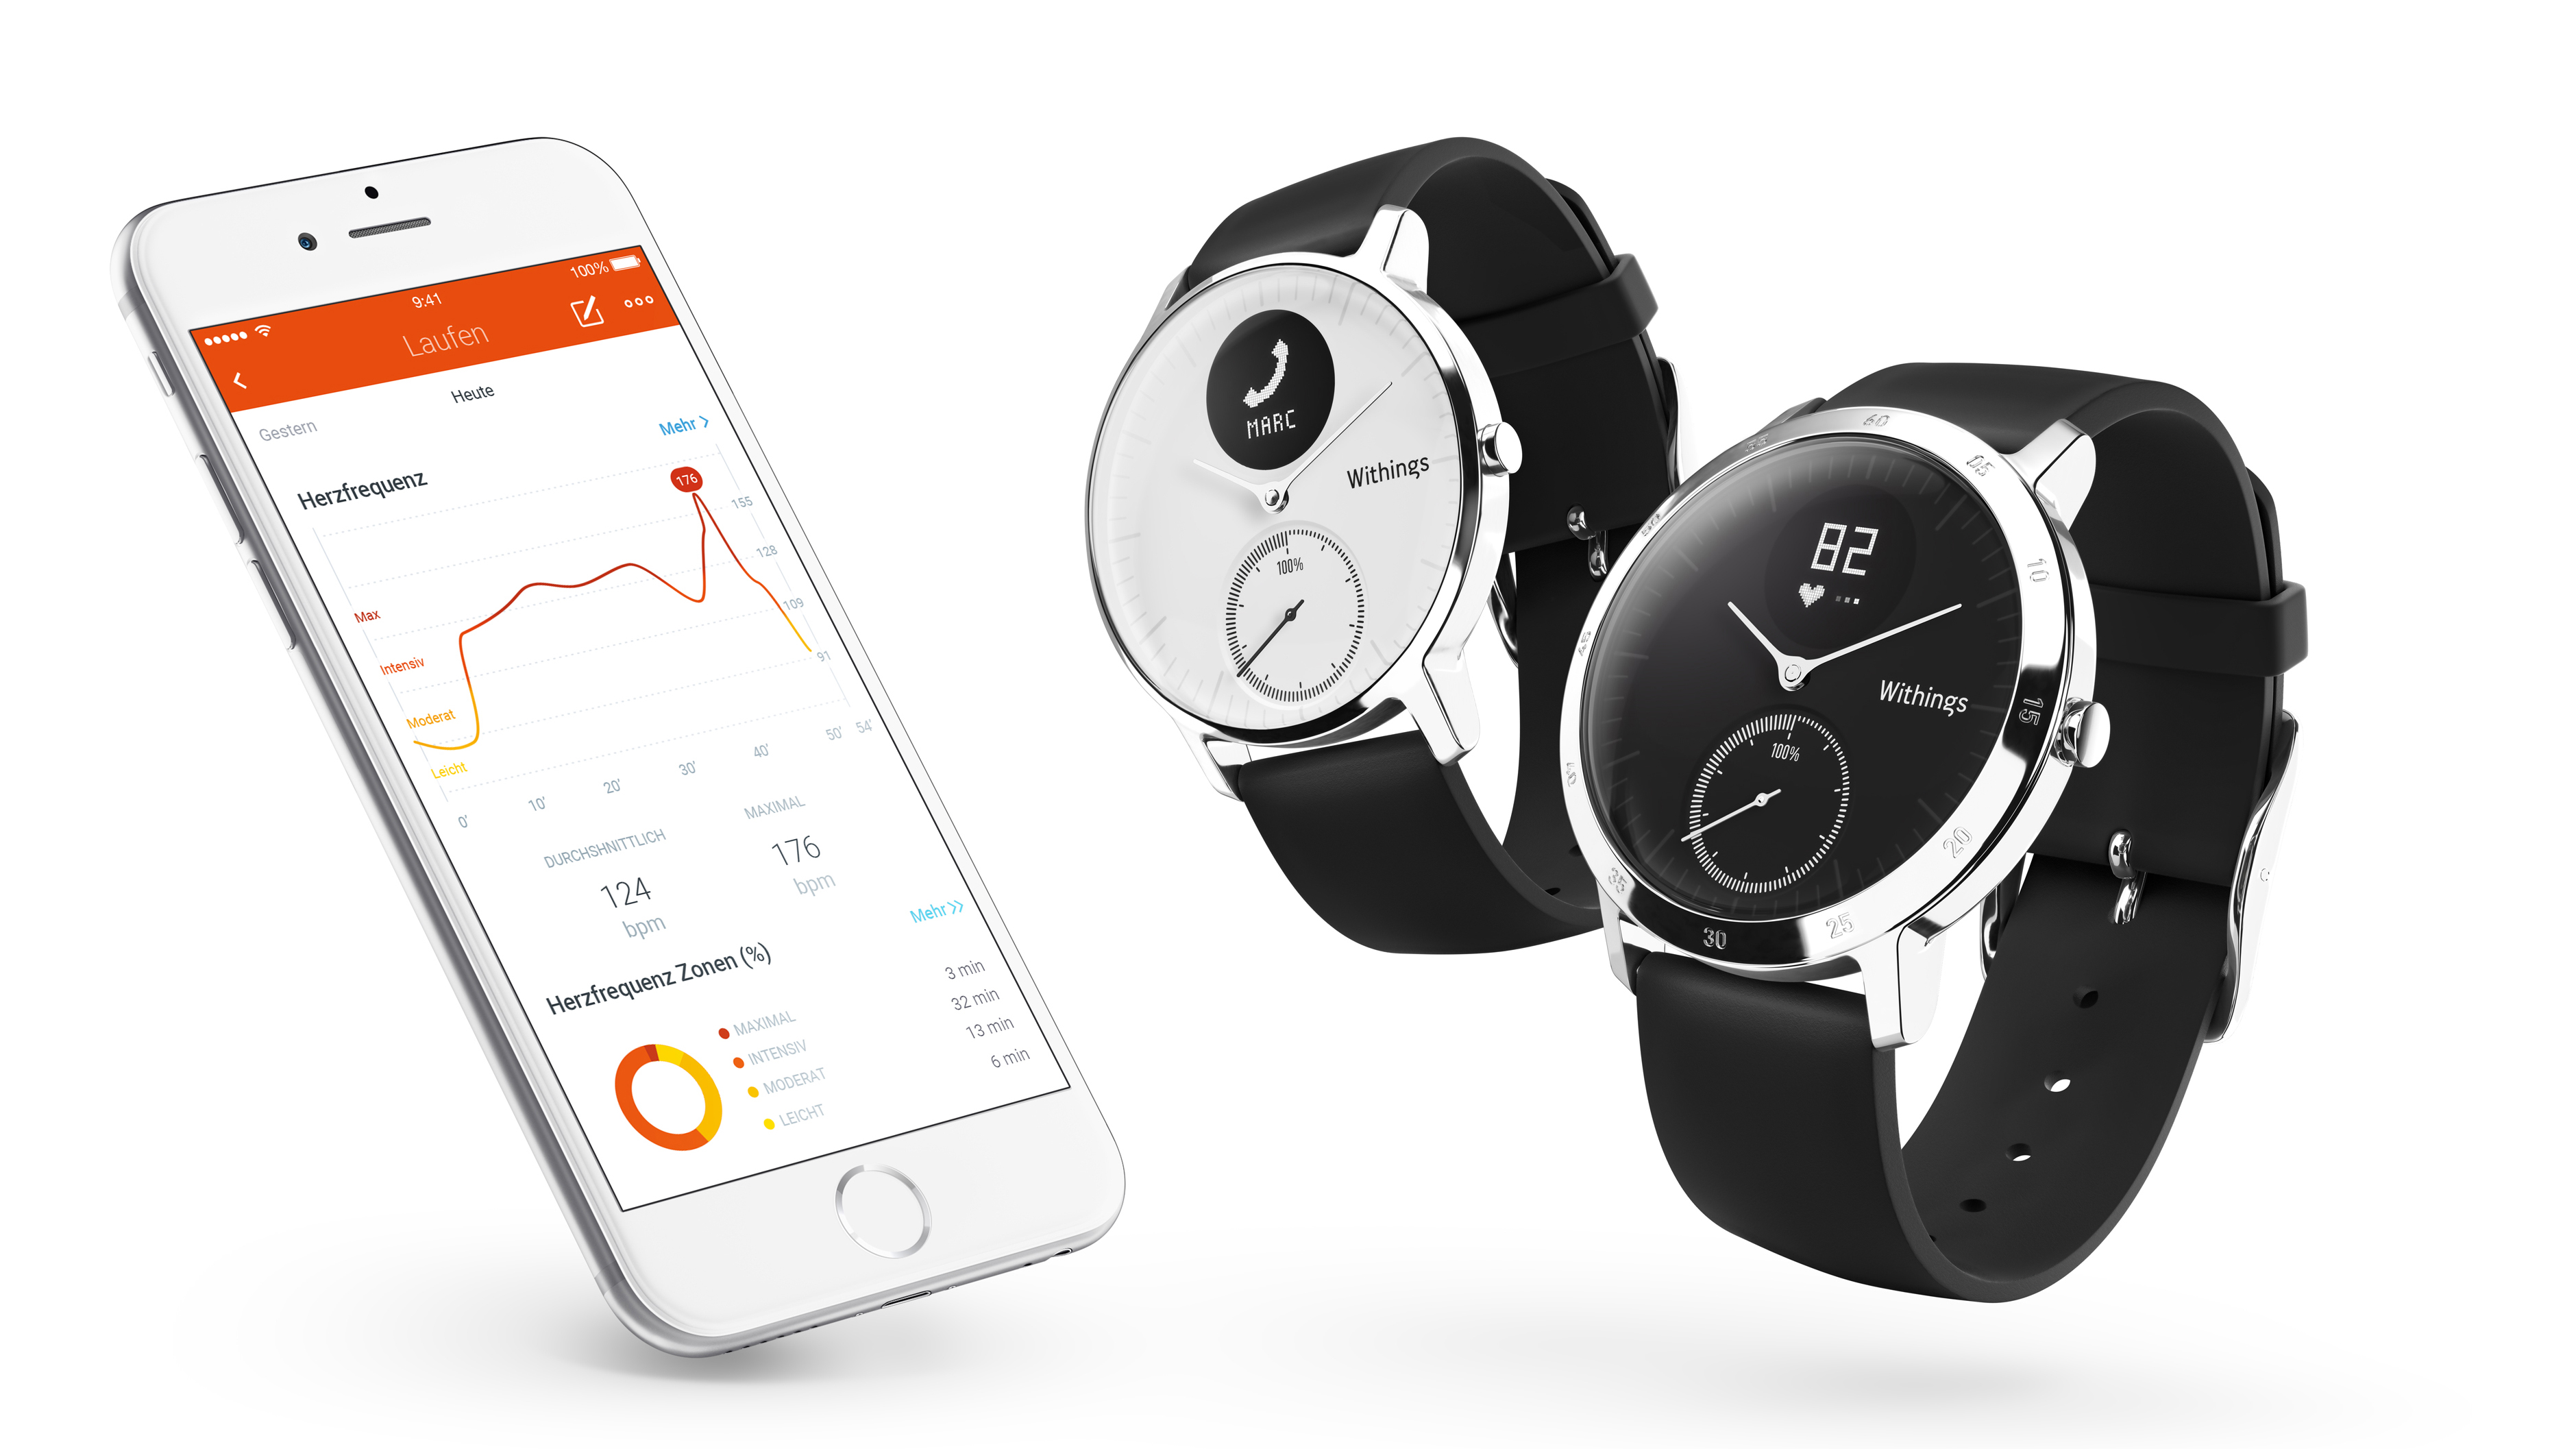 Best sleep trackers to buy in 2018: 8 gadgets to record your beauty sleep